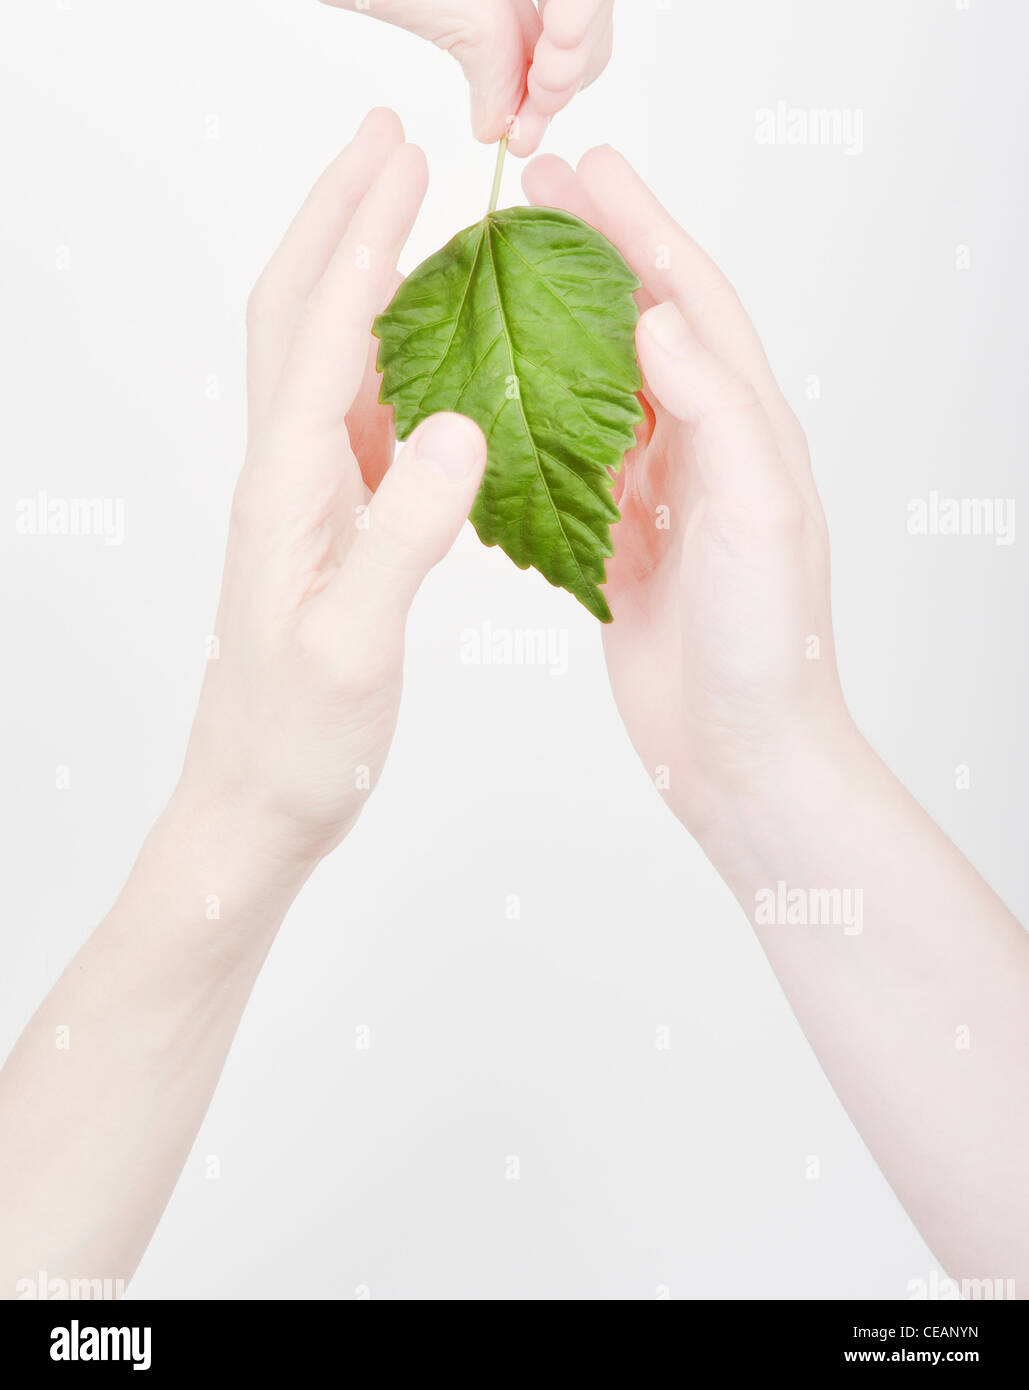 Hands shielding a green leaf - Stock Image